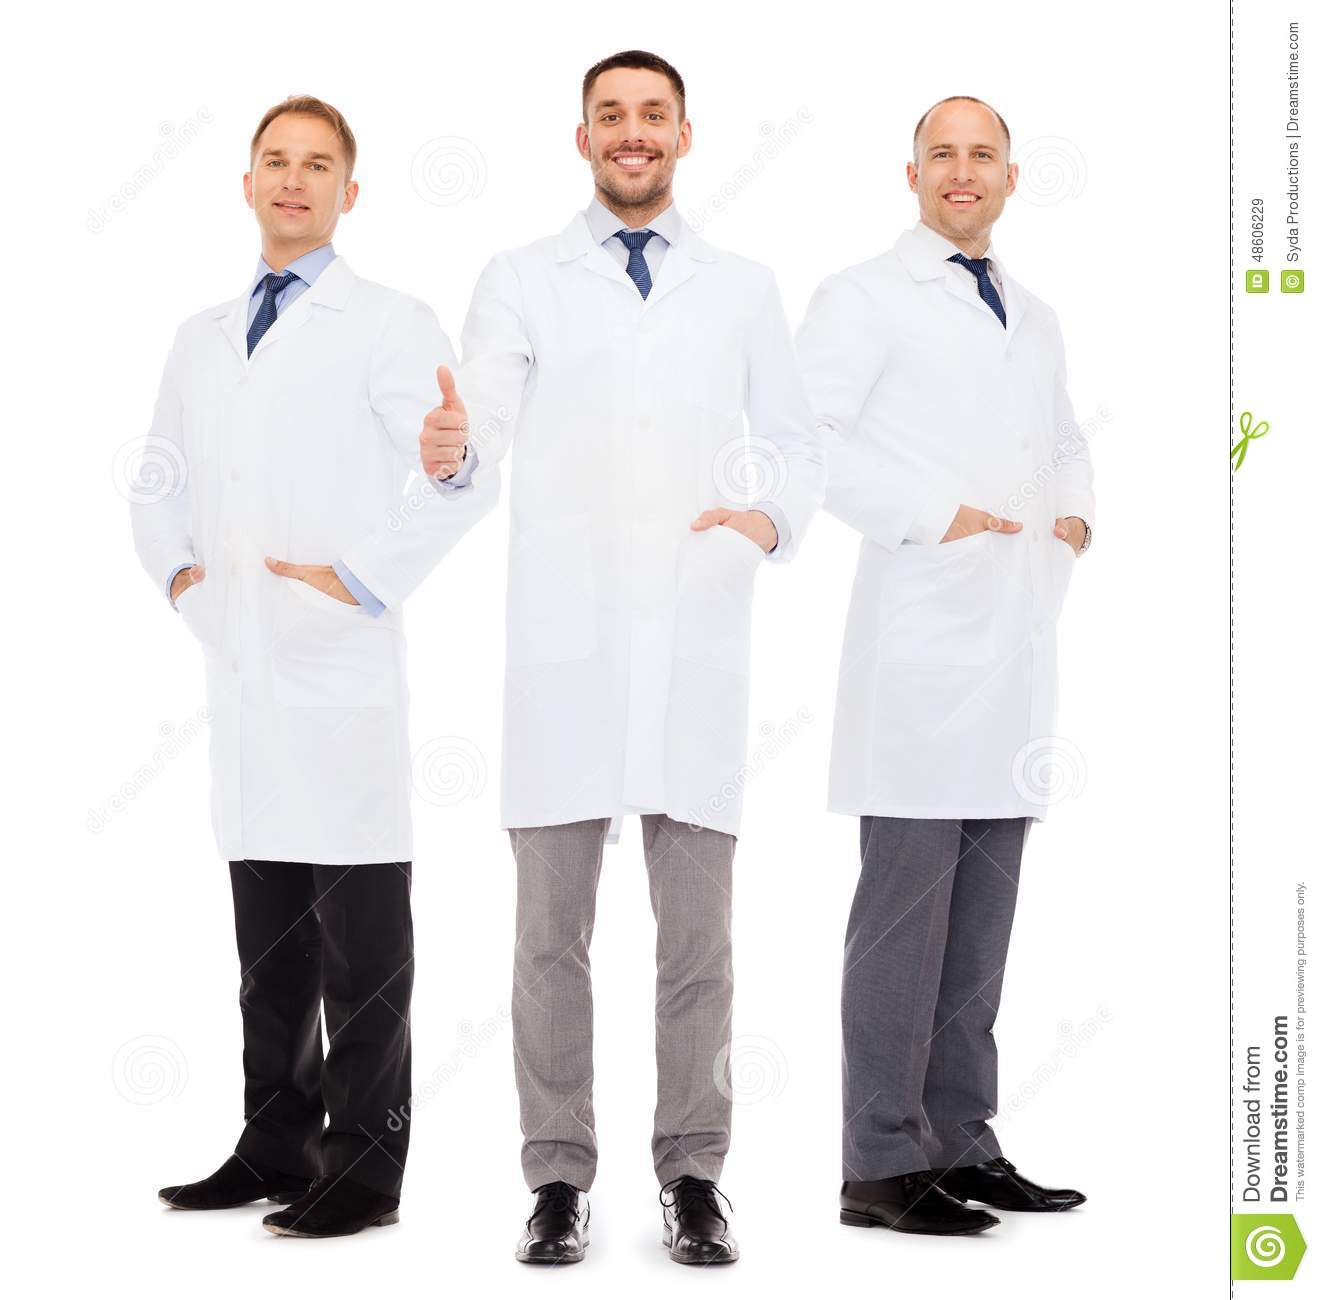 Doctors White Coats